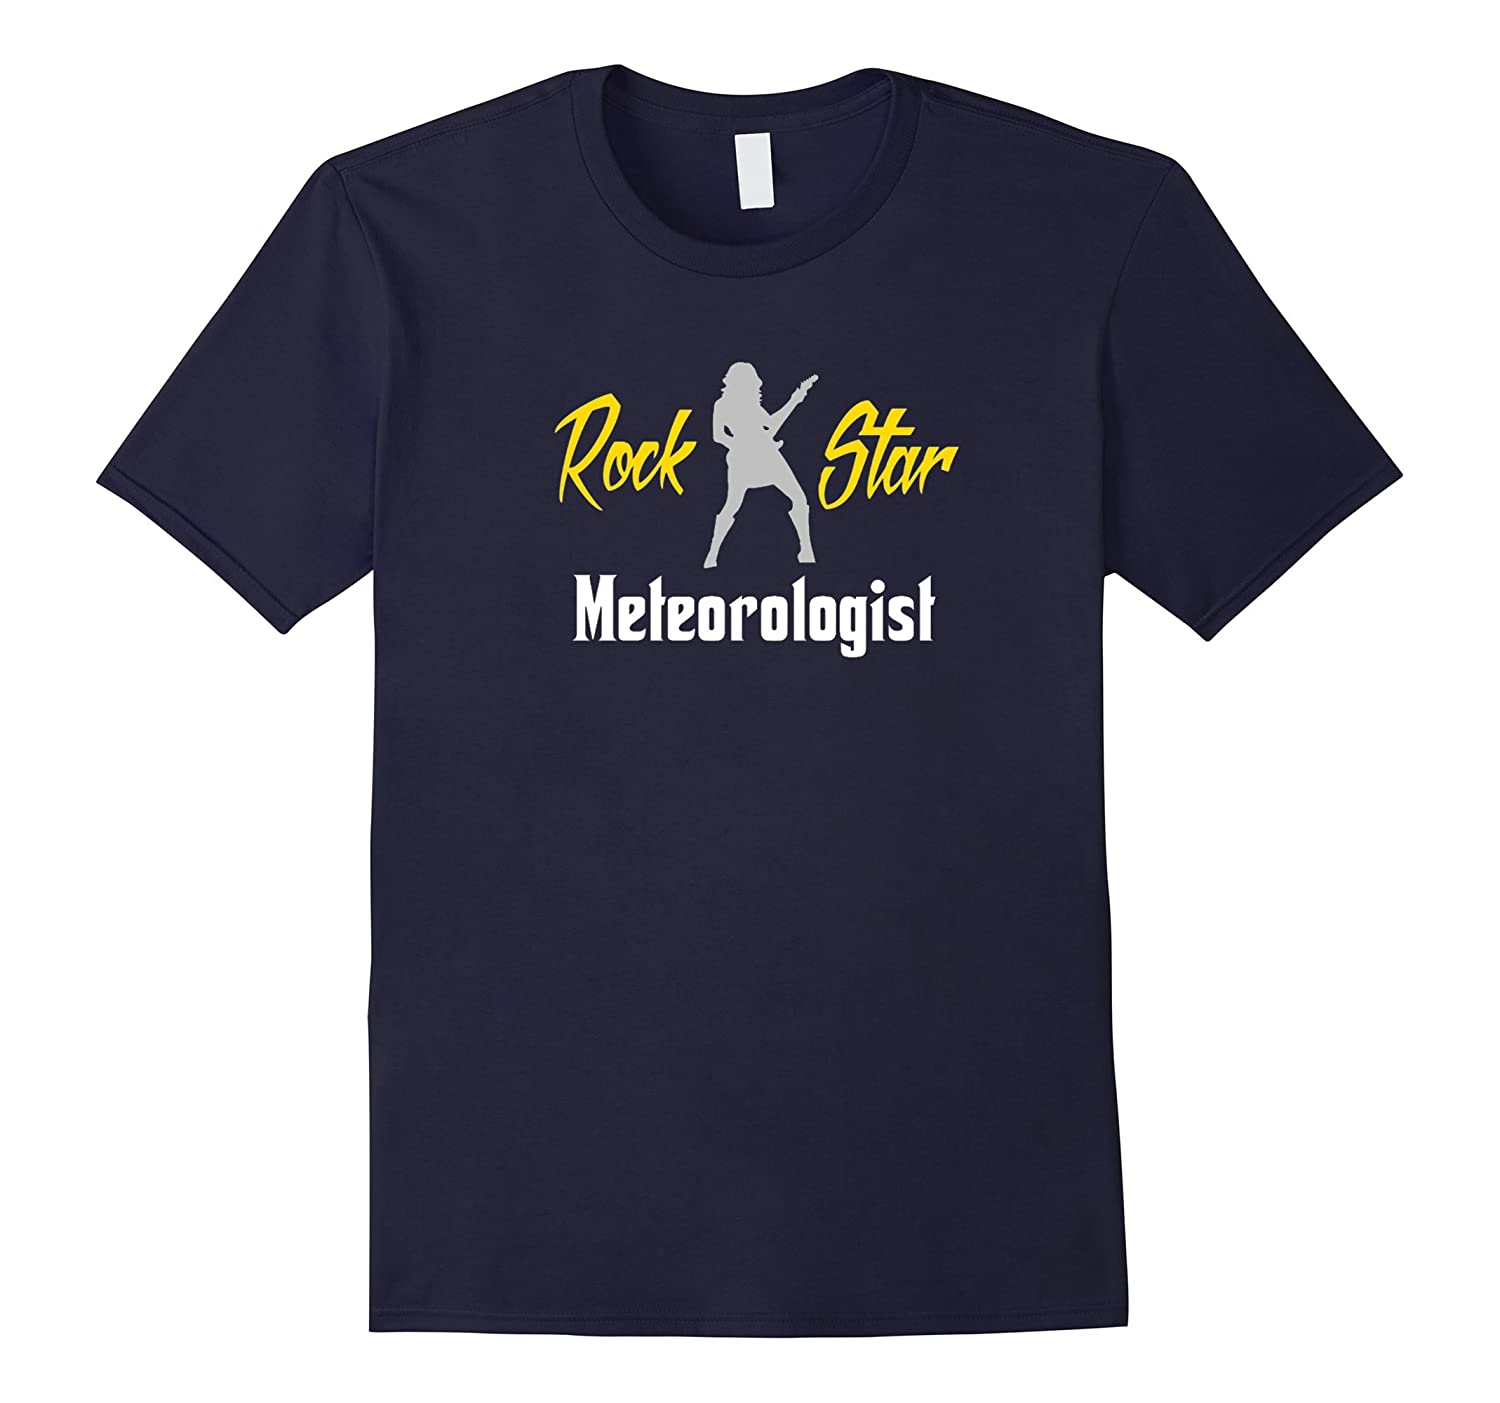 This Girl Is A Rock Star Meteorologist T-Shirt-TJ